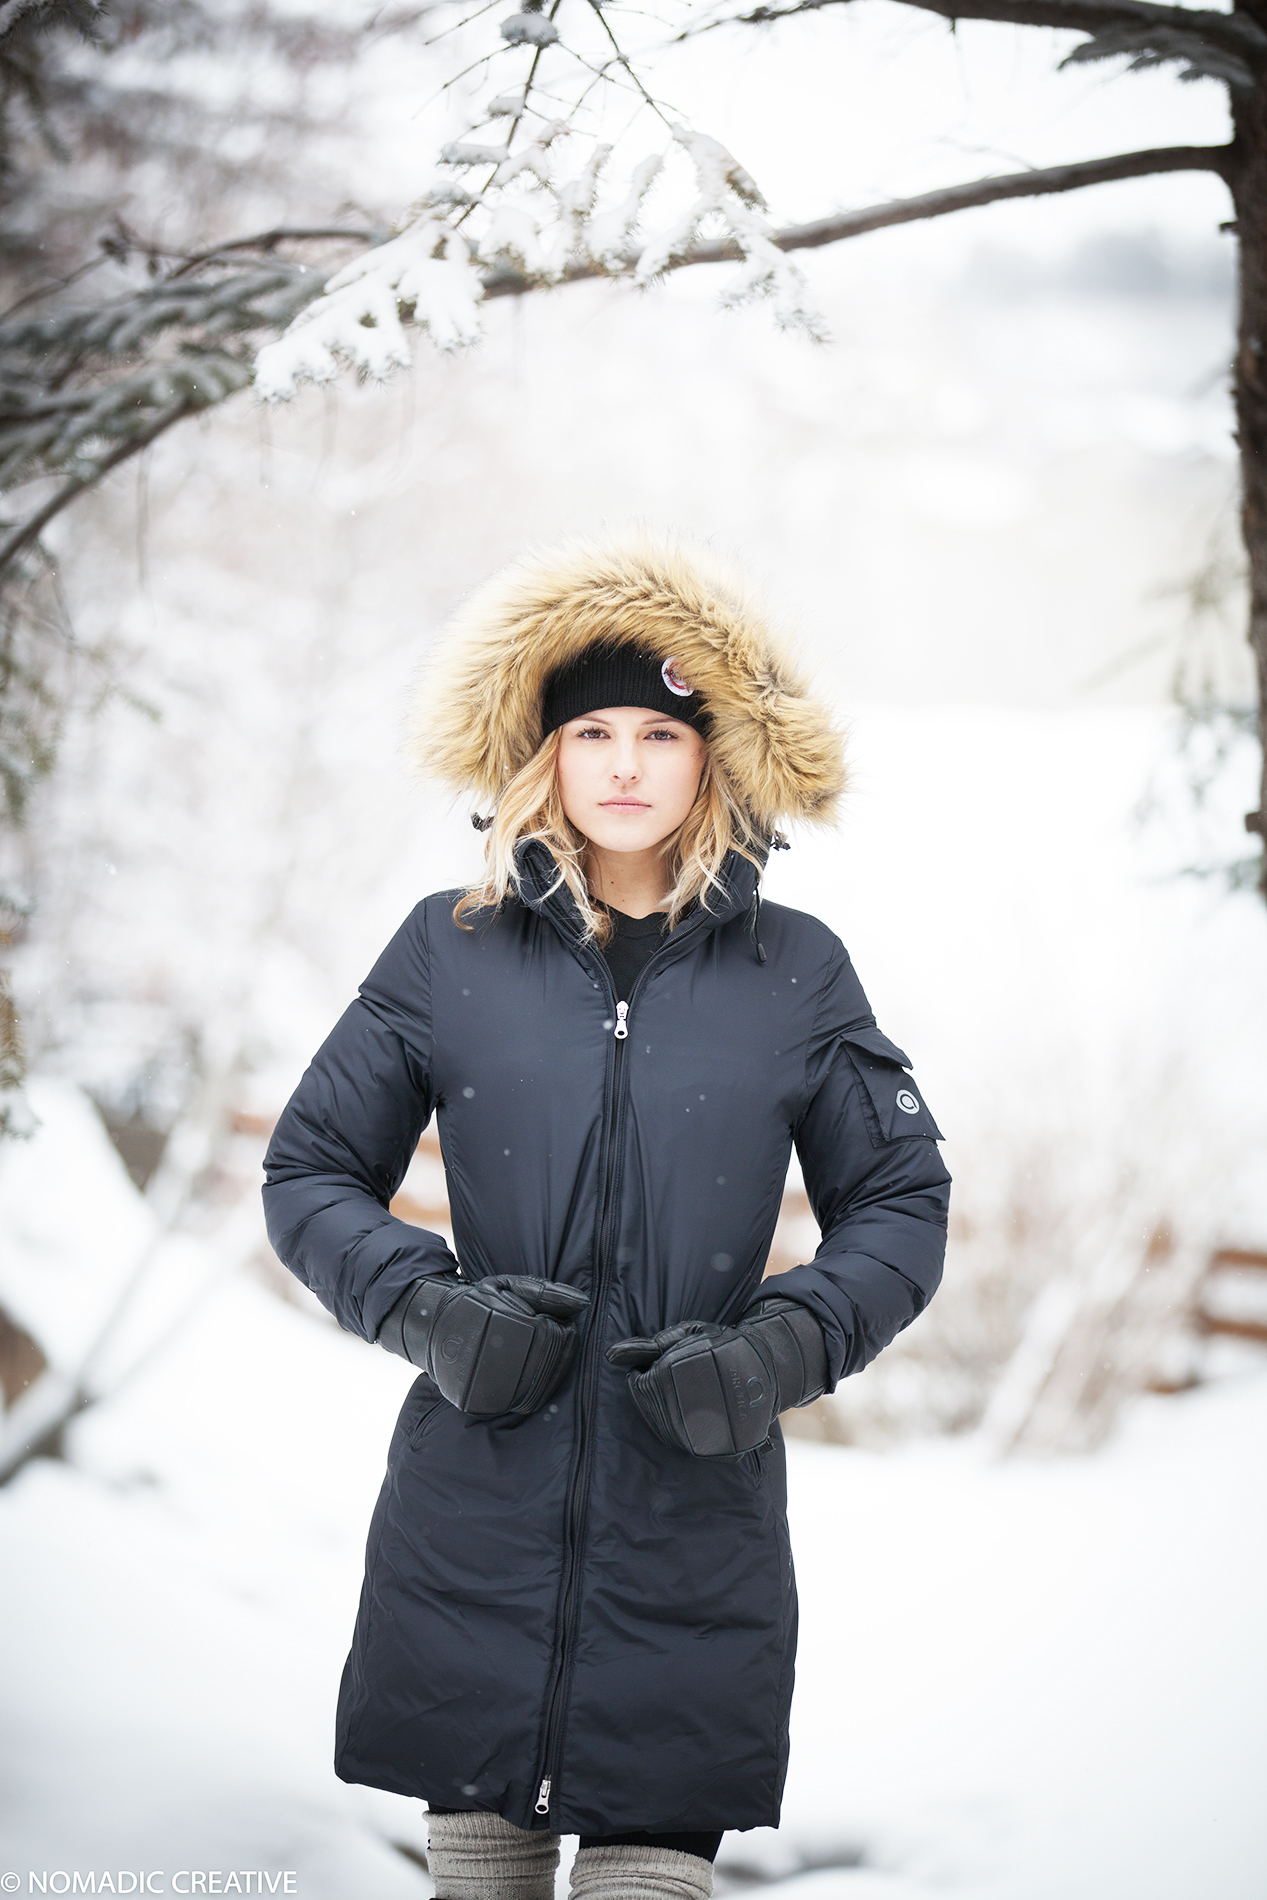 Arctica Winter 18 Down Jacket Product Lifestyle Photography